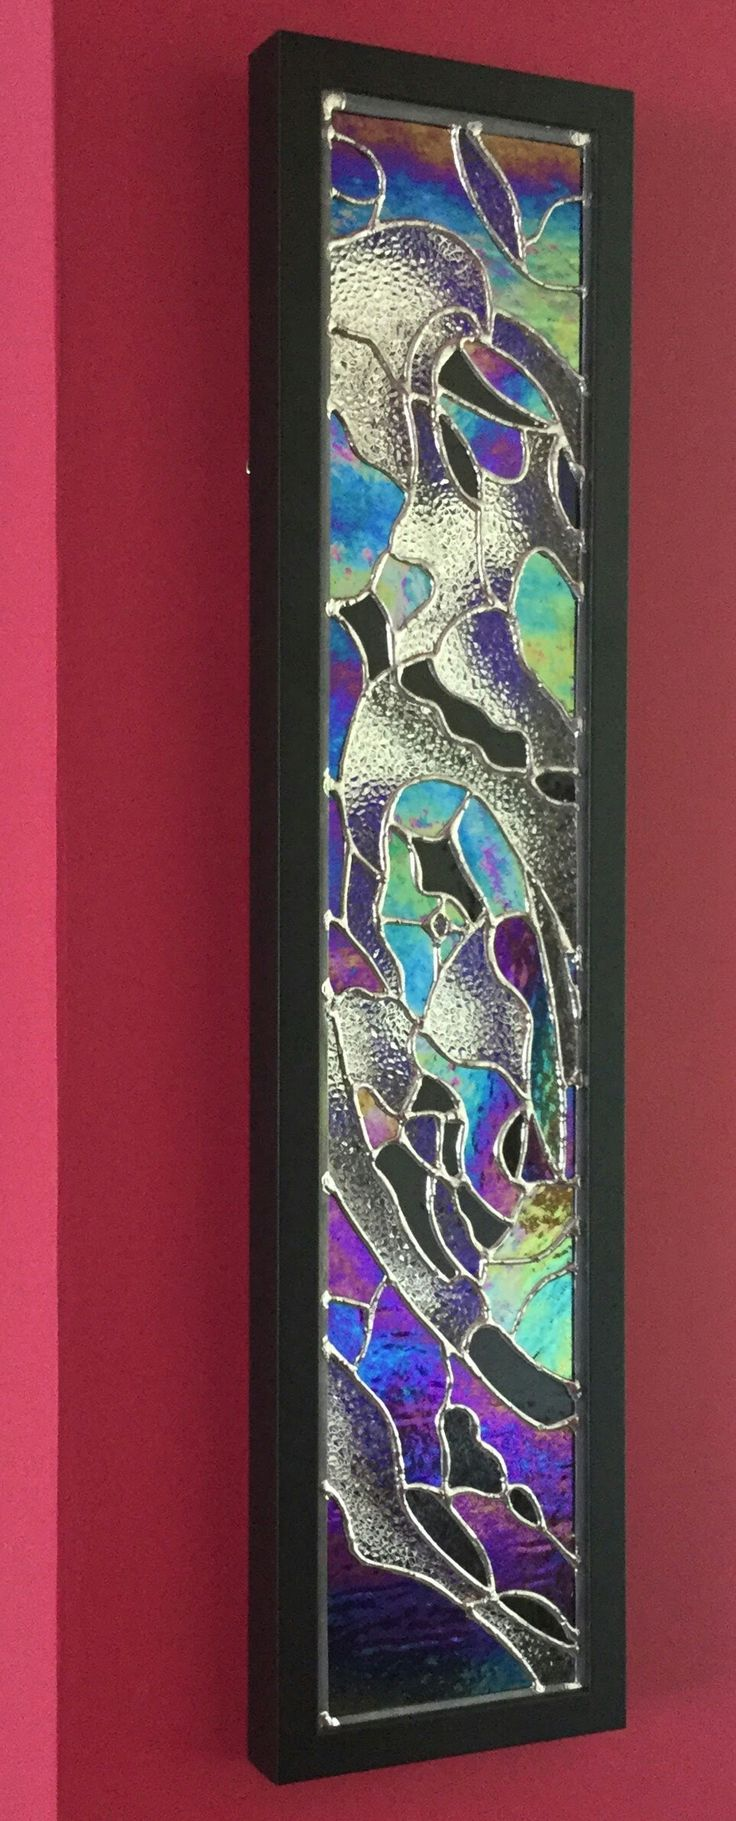 """Slice of a Galaxy 3.0""  A stained glass artwork created by Brian Dickinson aka. #dolittleglass   One of a series based on a Space theme. Recently exhibited at the UK Astro Show.   Mounted with a mirror behind the stained glass so that the artwork can be wall hung."